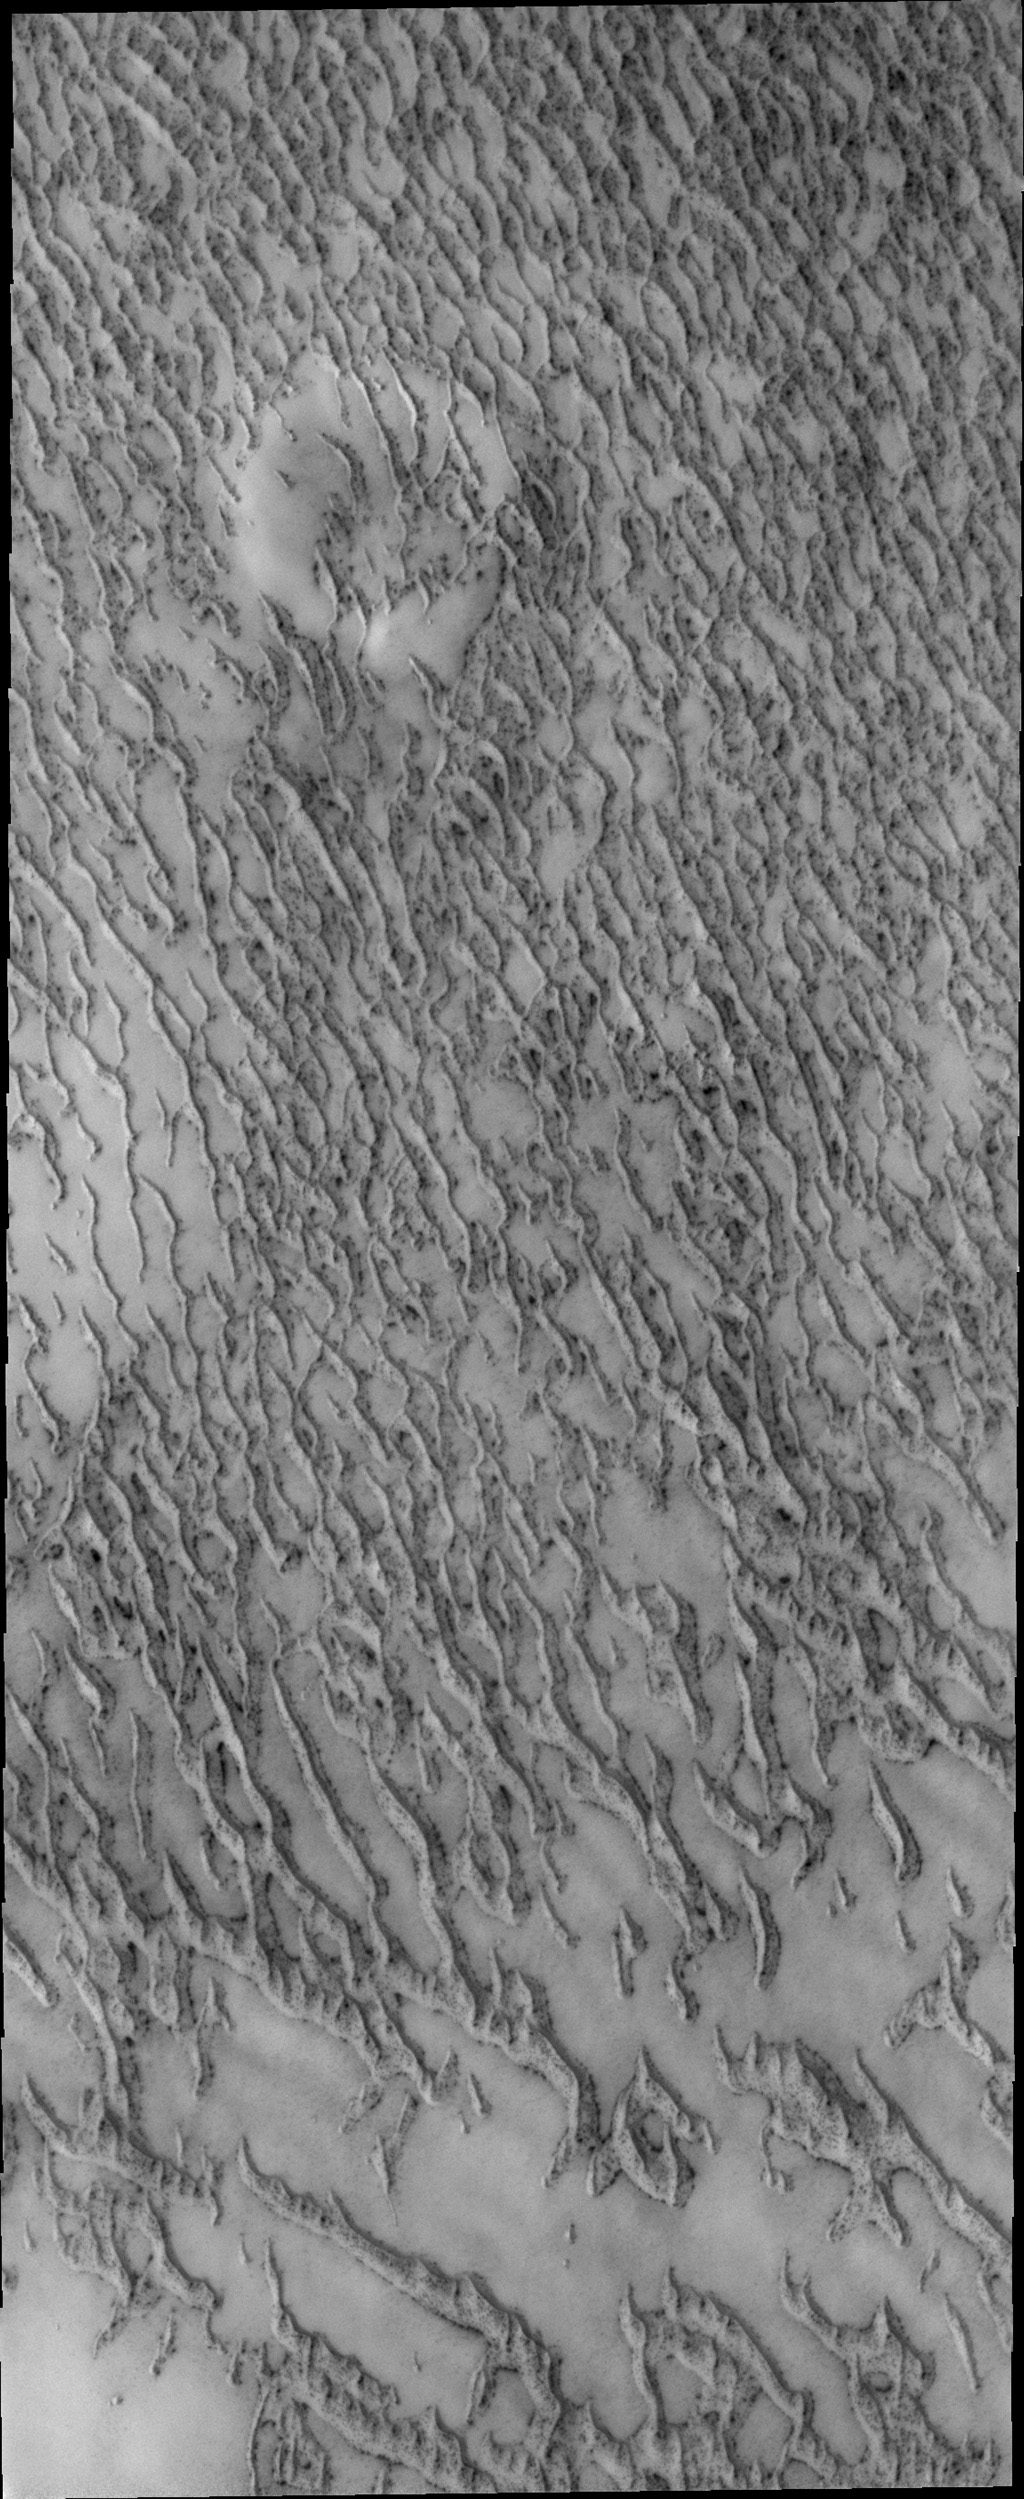 More dunes are encountered surrounding the north polar cap by NASA's 2001 Mars Odyssey spacecraft.